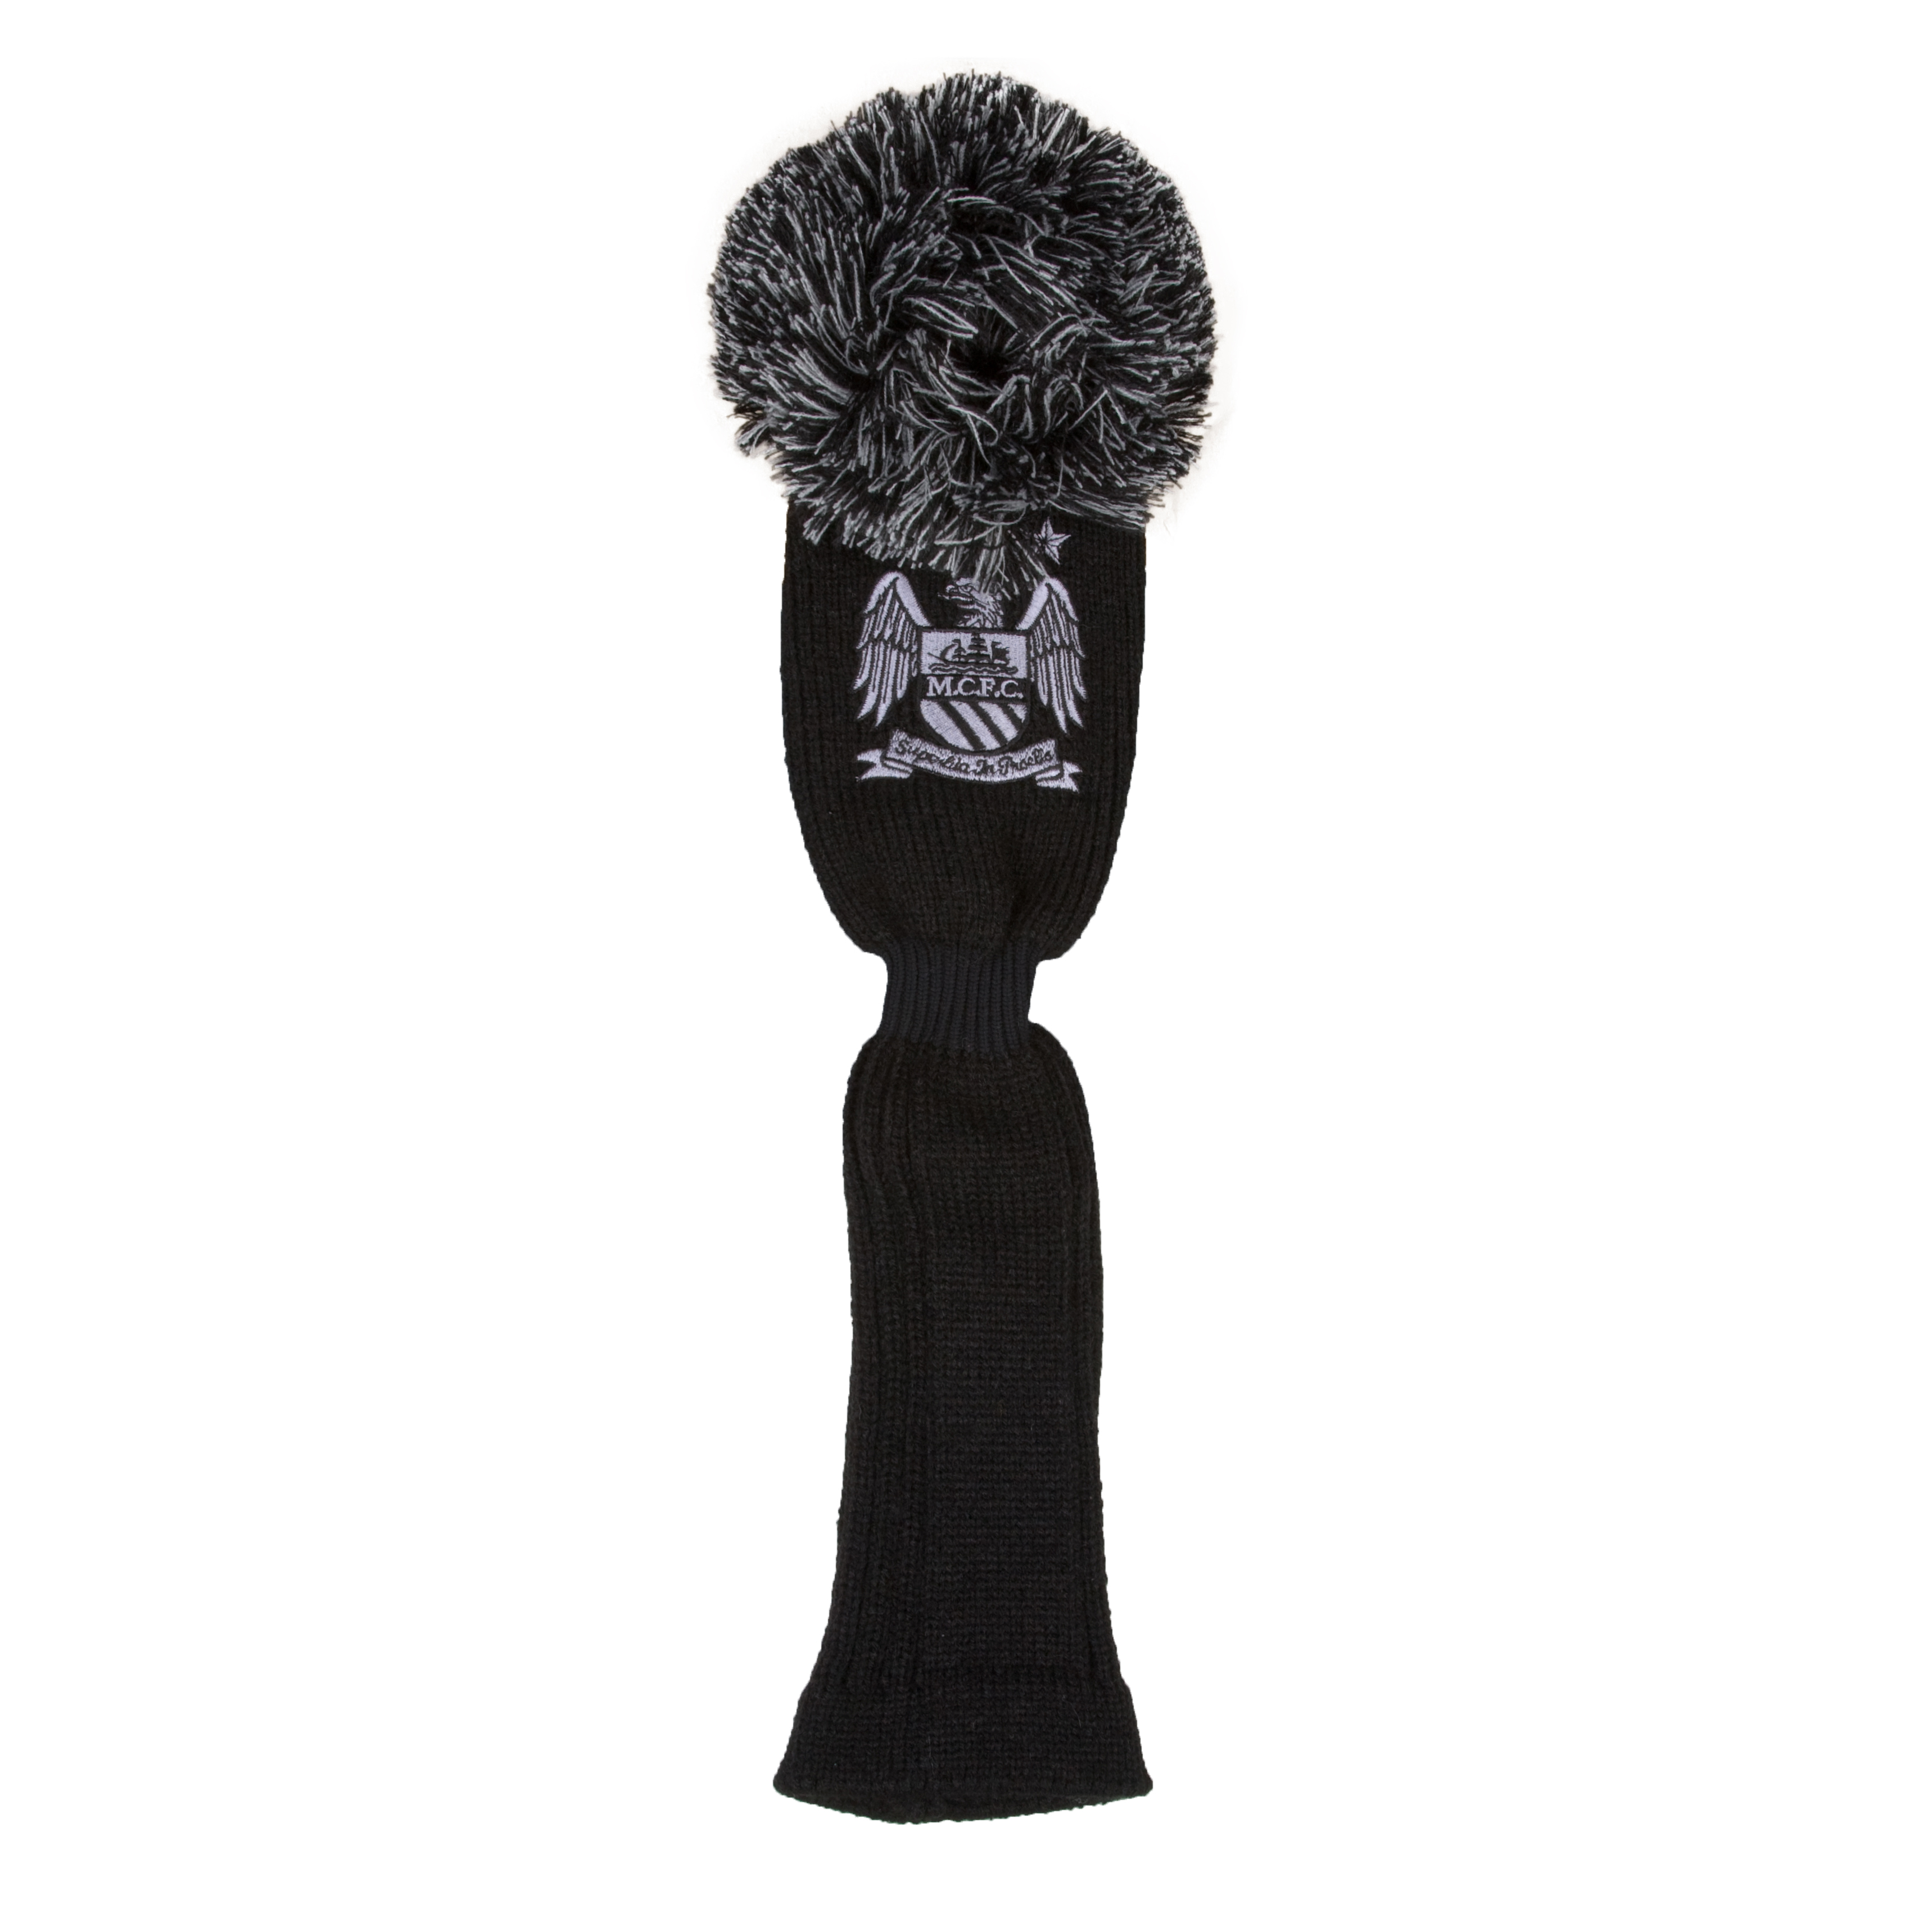 Manchester City Executive Golf Pom-Pom Driver Headcover - Black/Silver